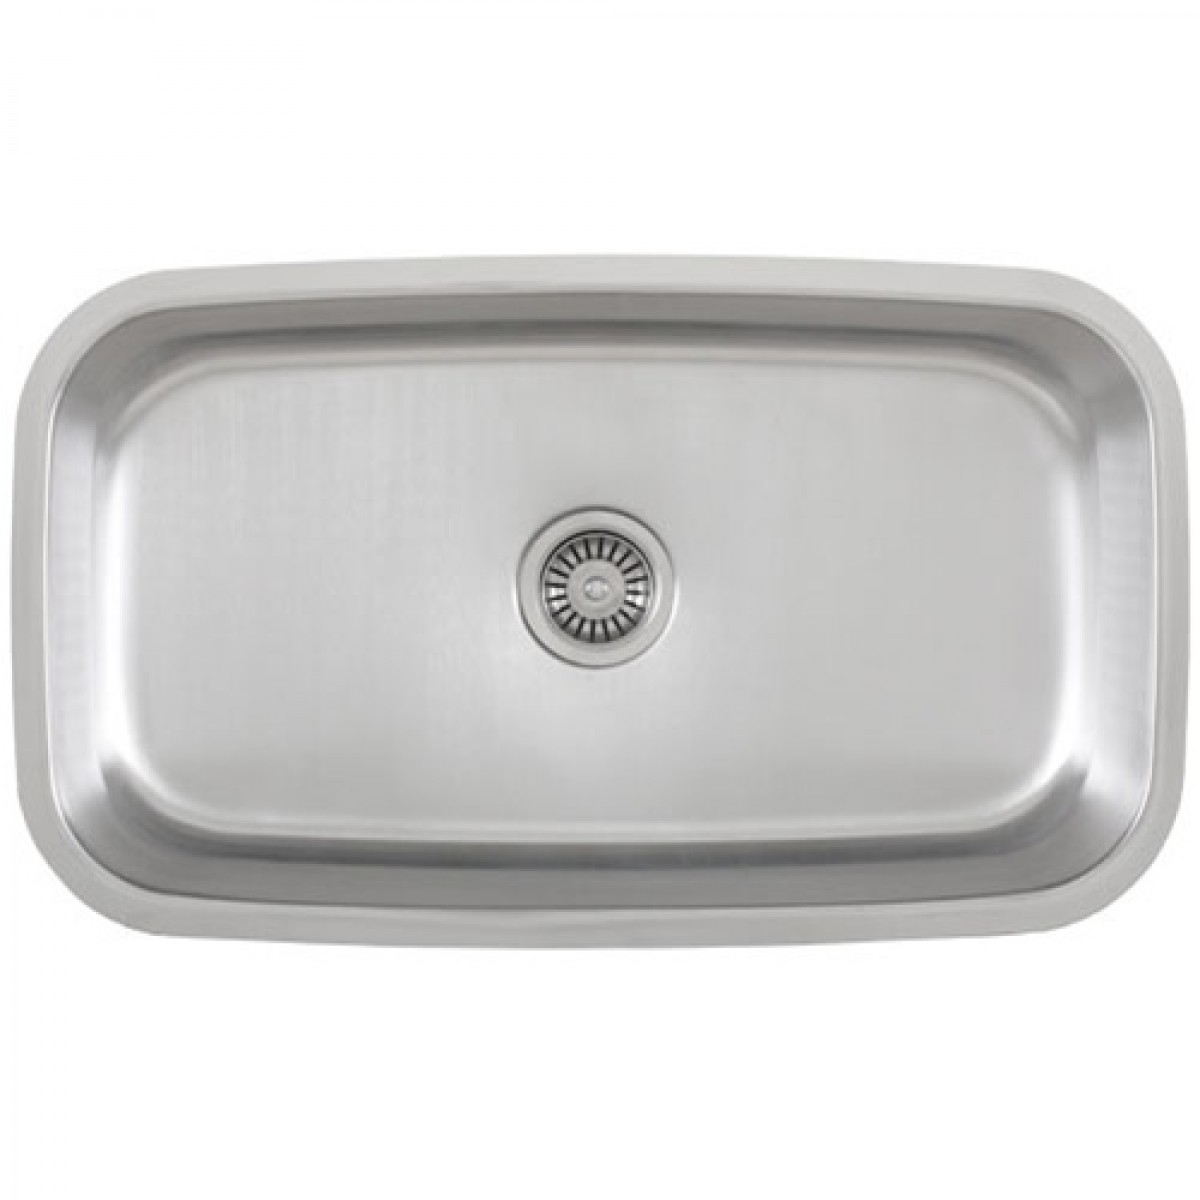 X    Bowl Kitchen Sink